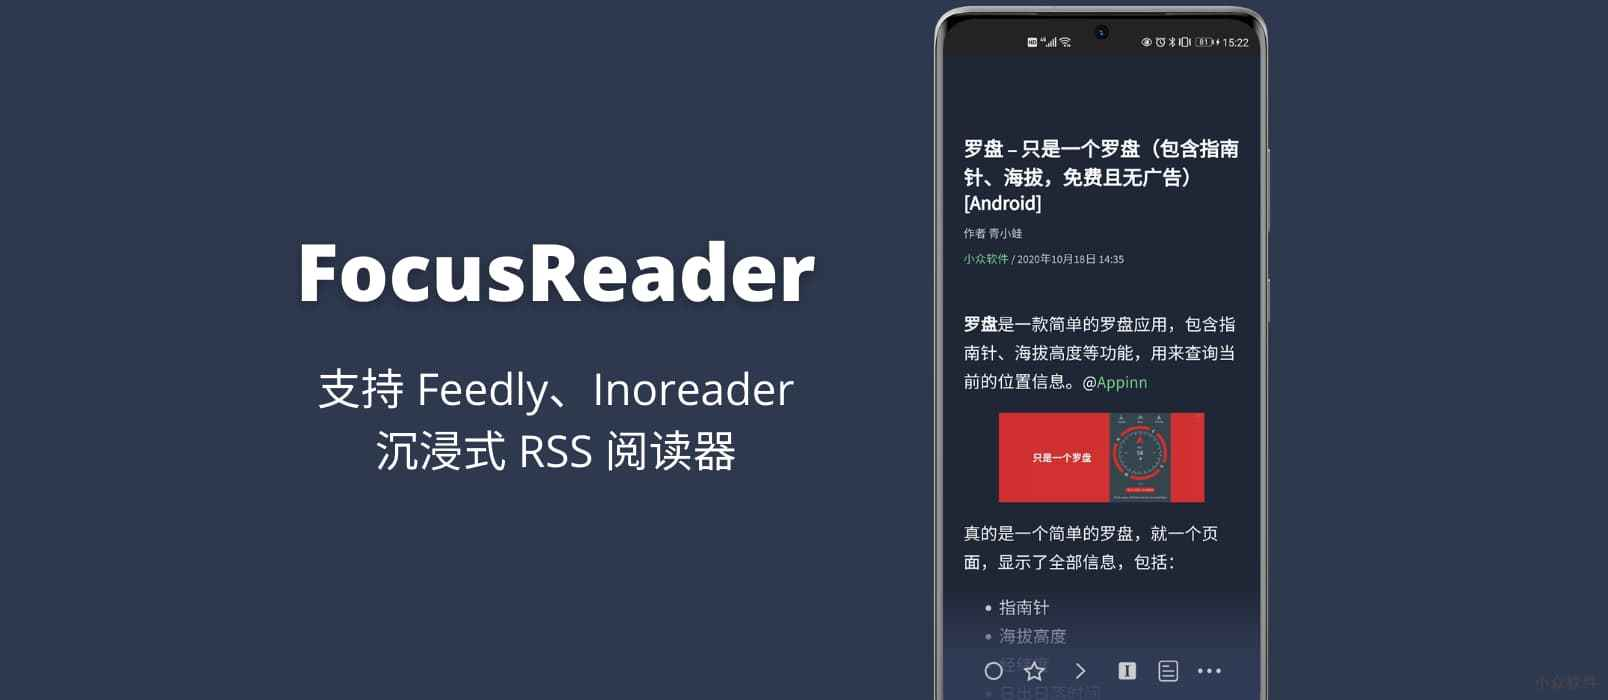 FocusReader - 支持 Feedly、Inoreader 的沉浸式 RSS 阅读器[Android] 1